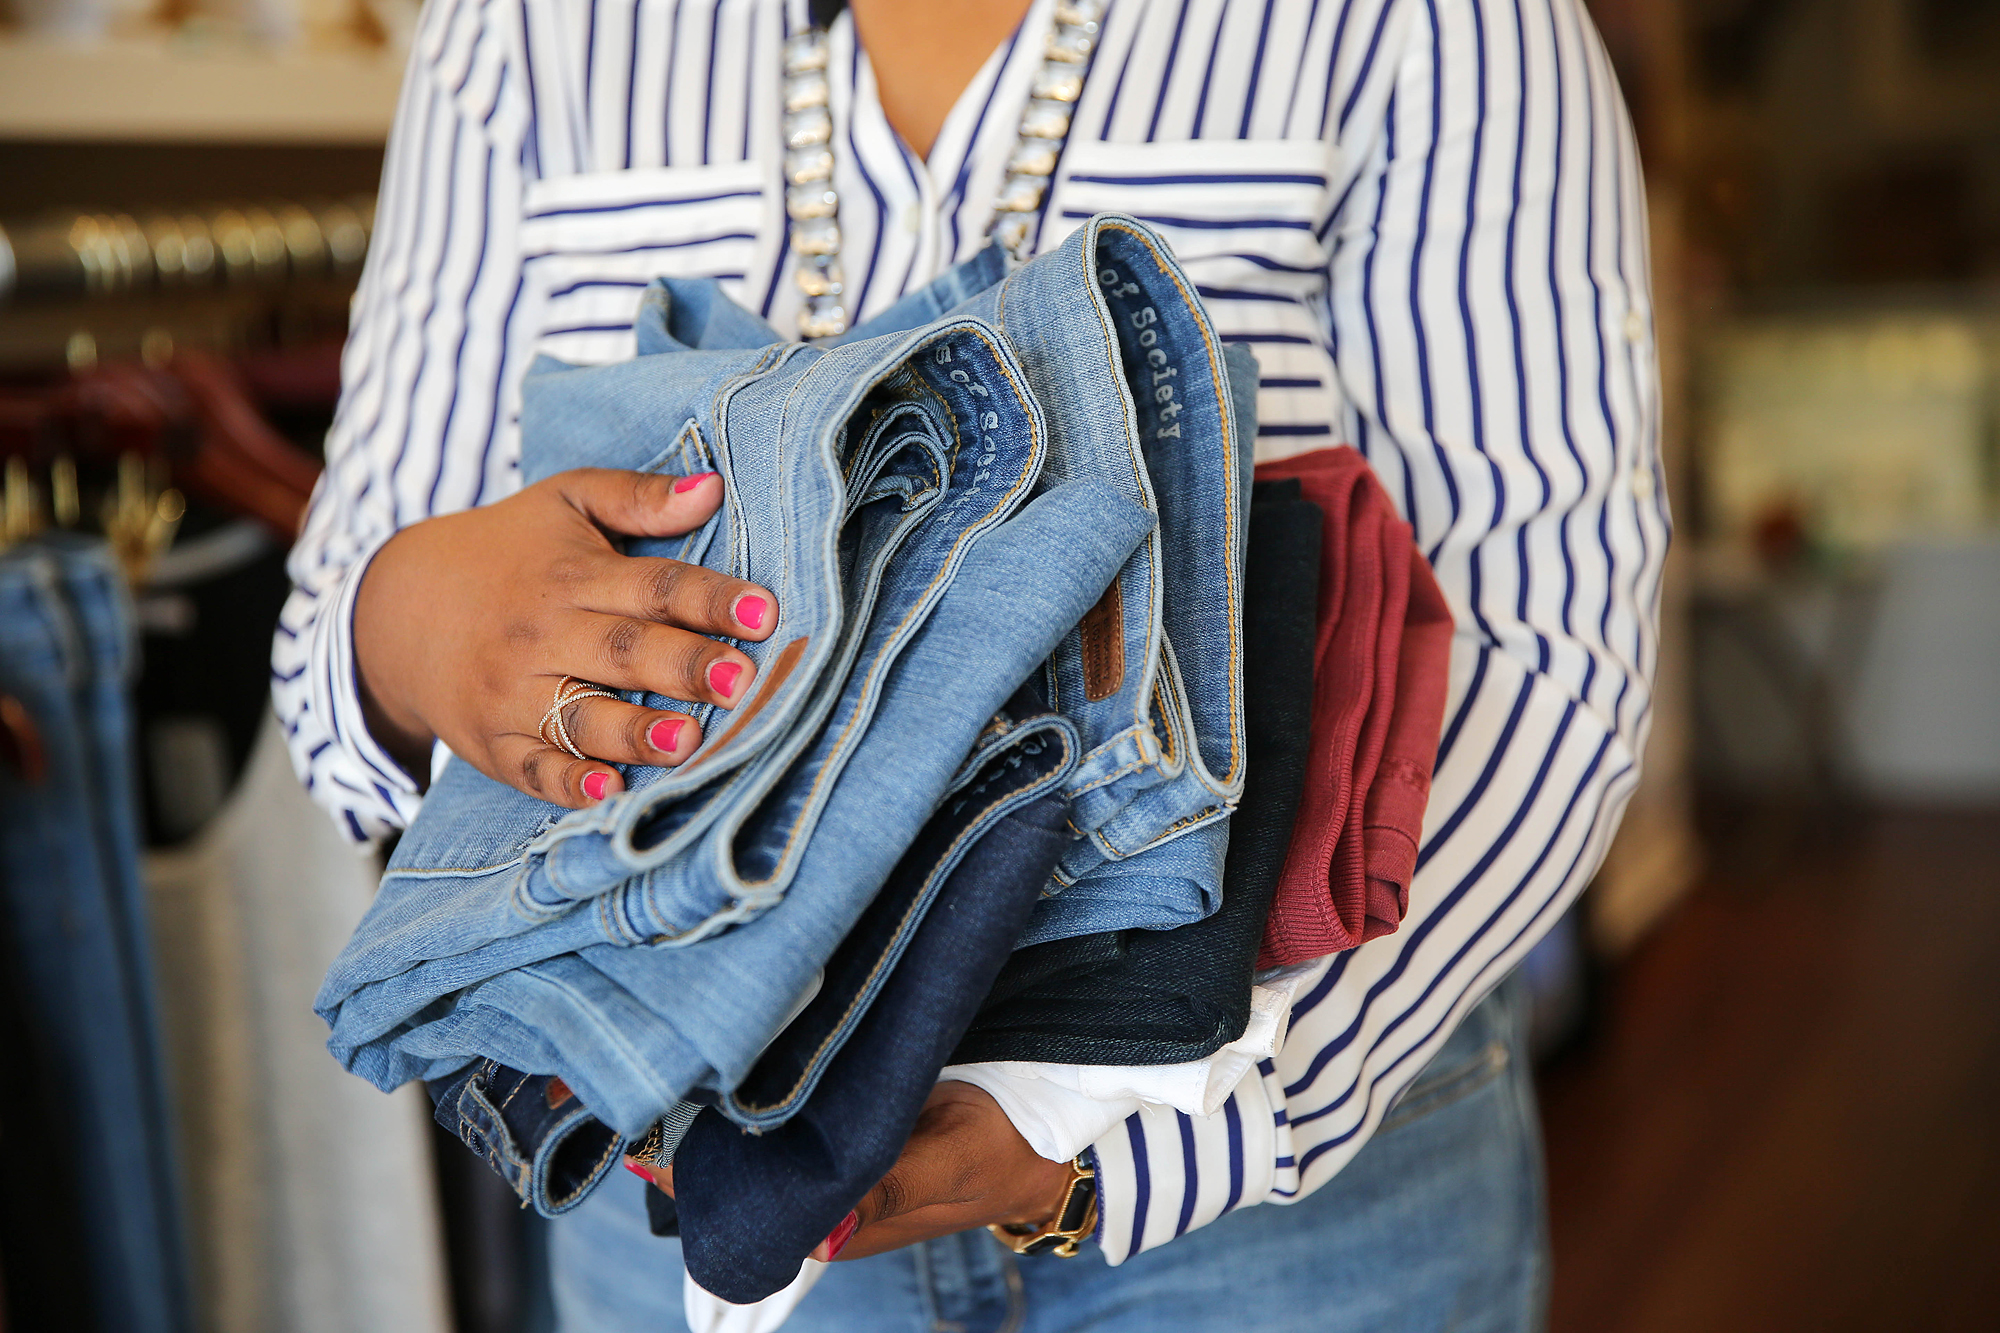 Neepa holding stack of jeans